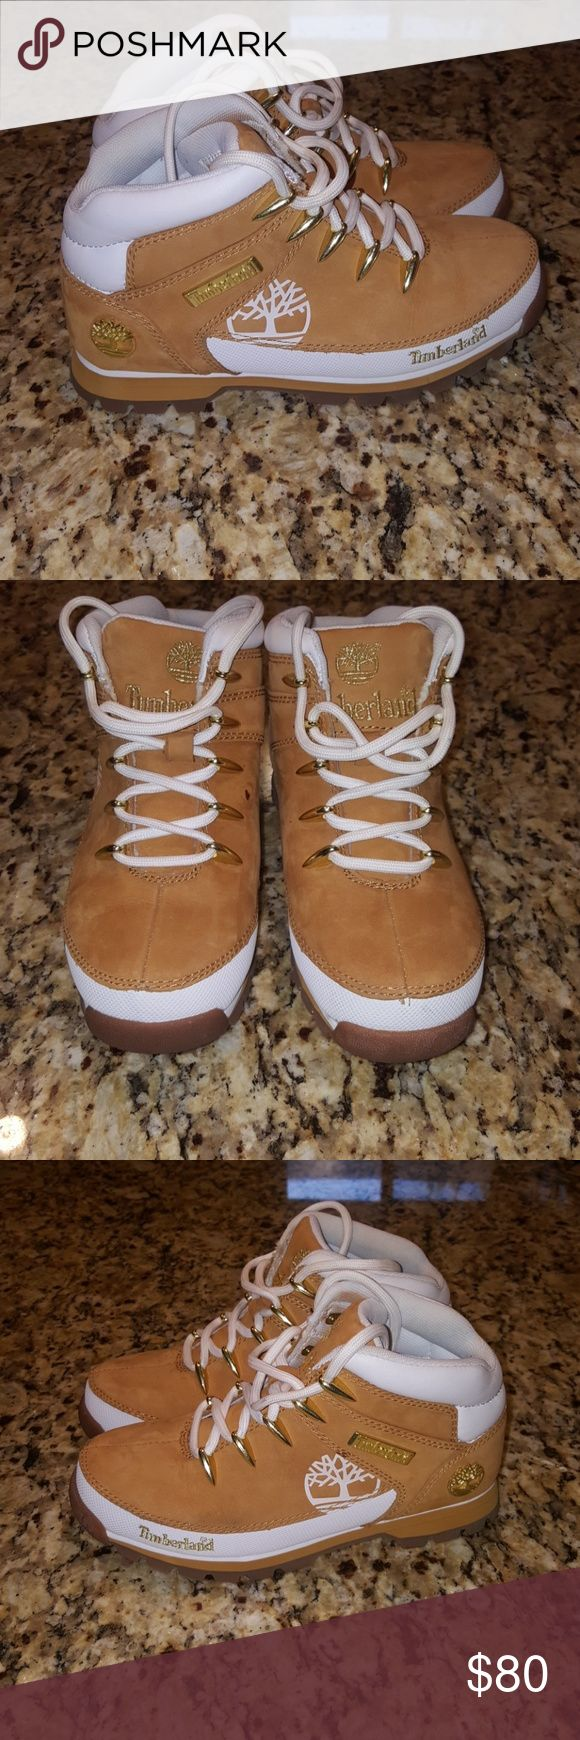 WOMENS TIMBERLAND EURO SPRINT HIKER BOOTS #16642 Look no further if you are looking for fashionable boots or something to go hiking with i have what you need these awesome boots are a wheat color with white ive only wore them 1time around the house i got a lil speck on 1 of them you can see them on picture number #5 other then that they great Timberland Shoes Ankle Boots & Booties